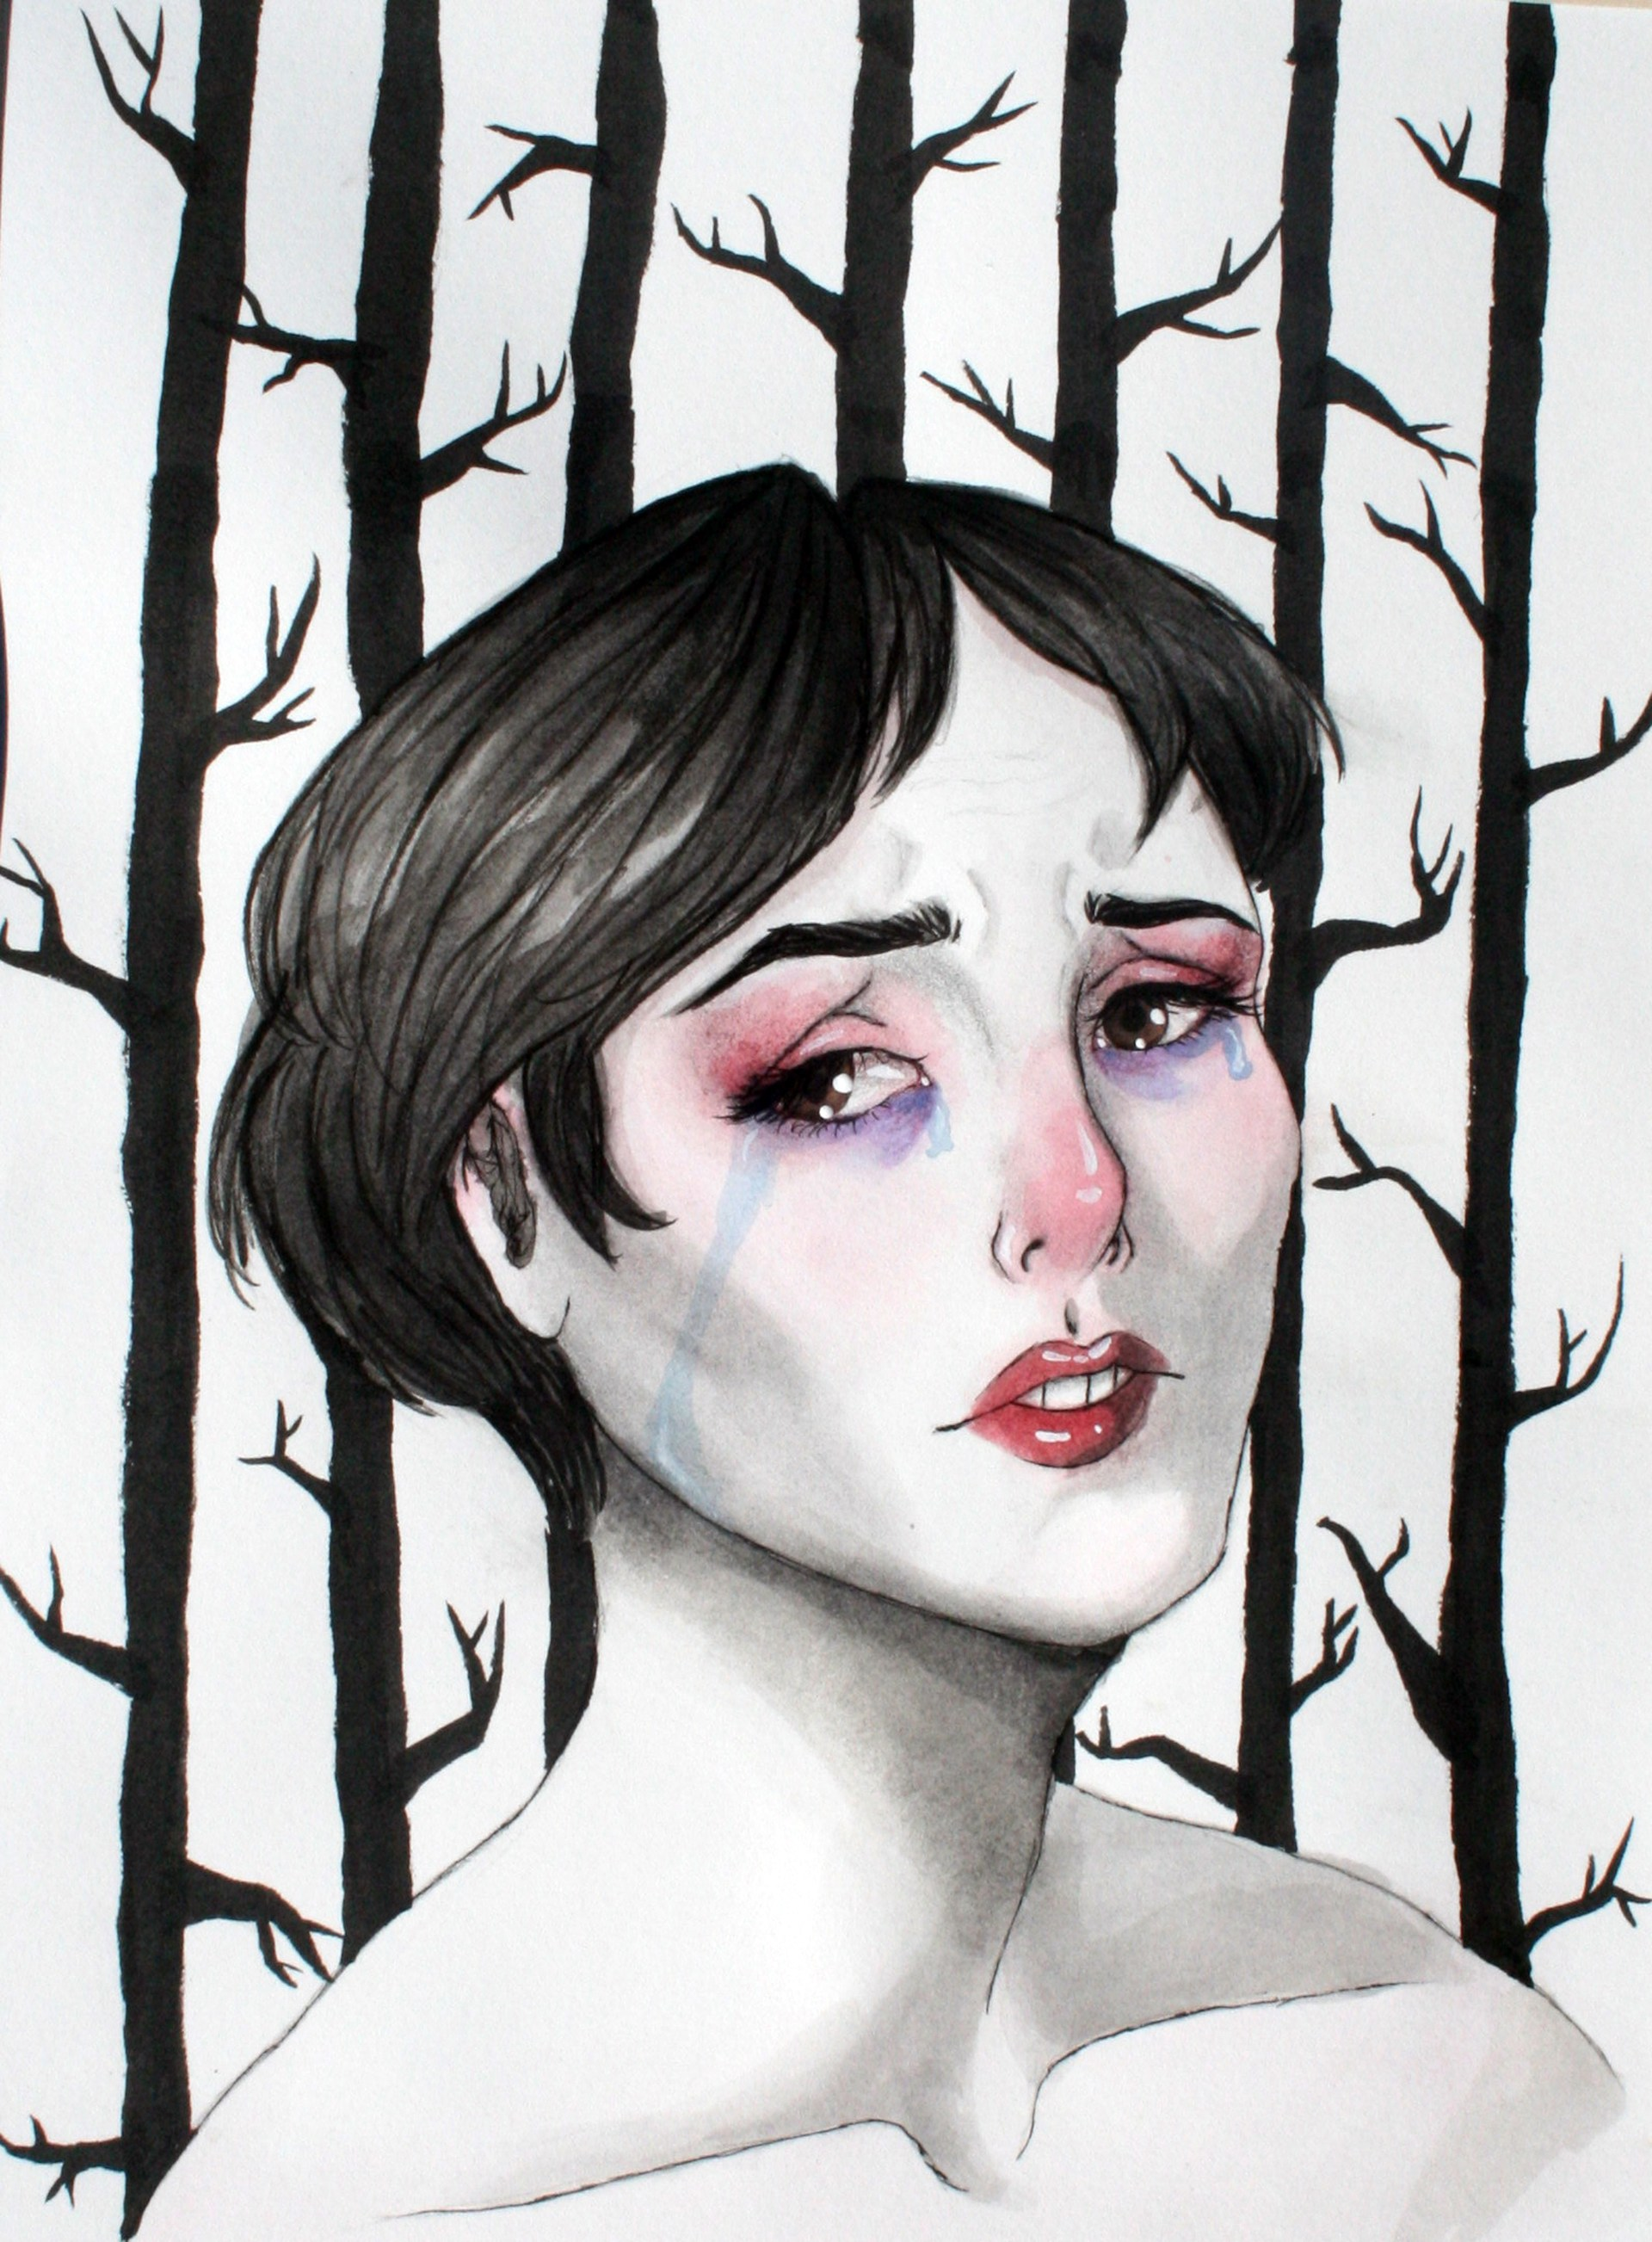 painting of a girl and trees